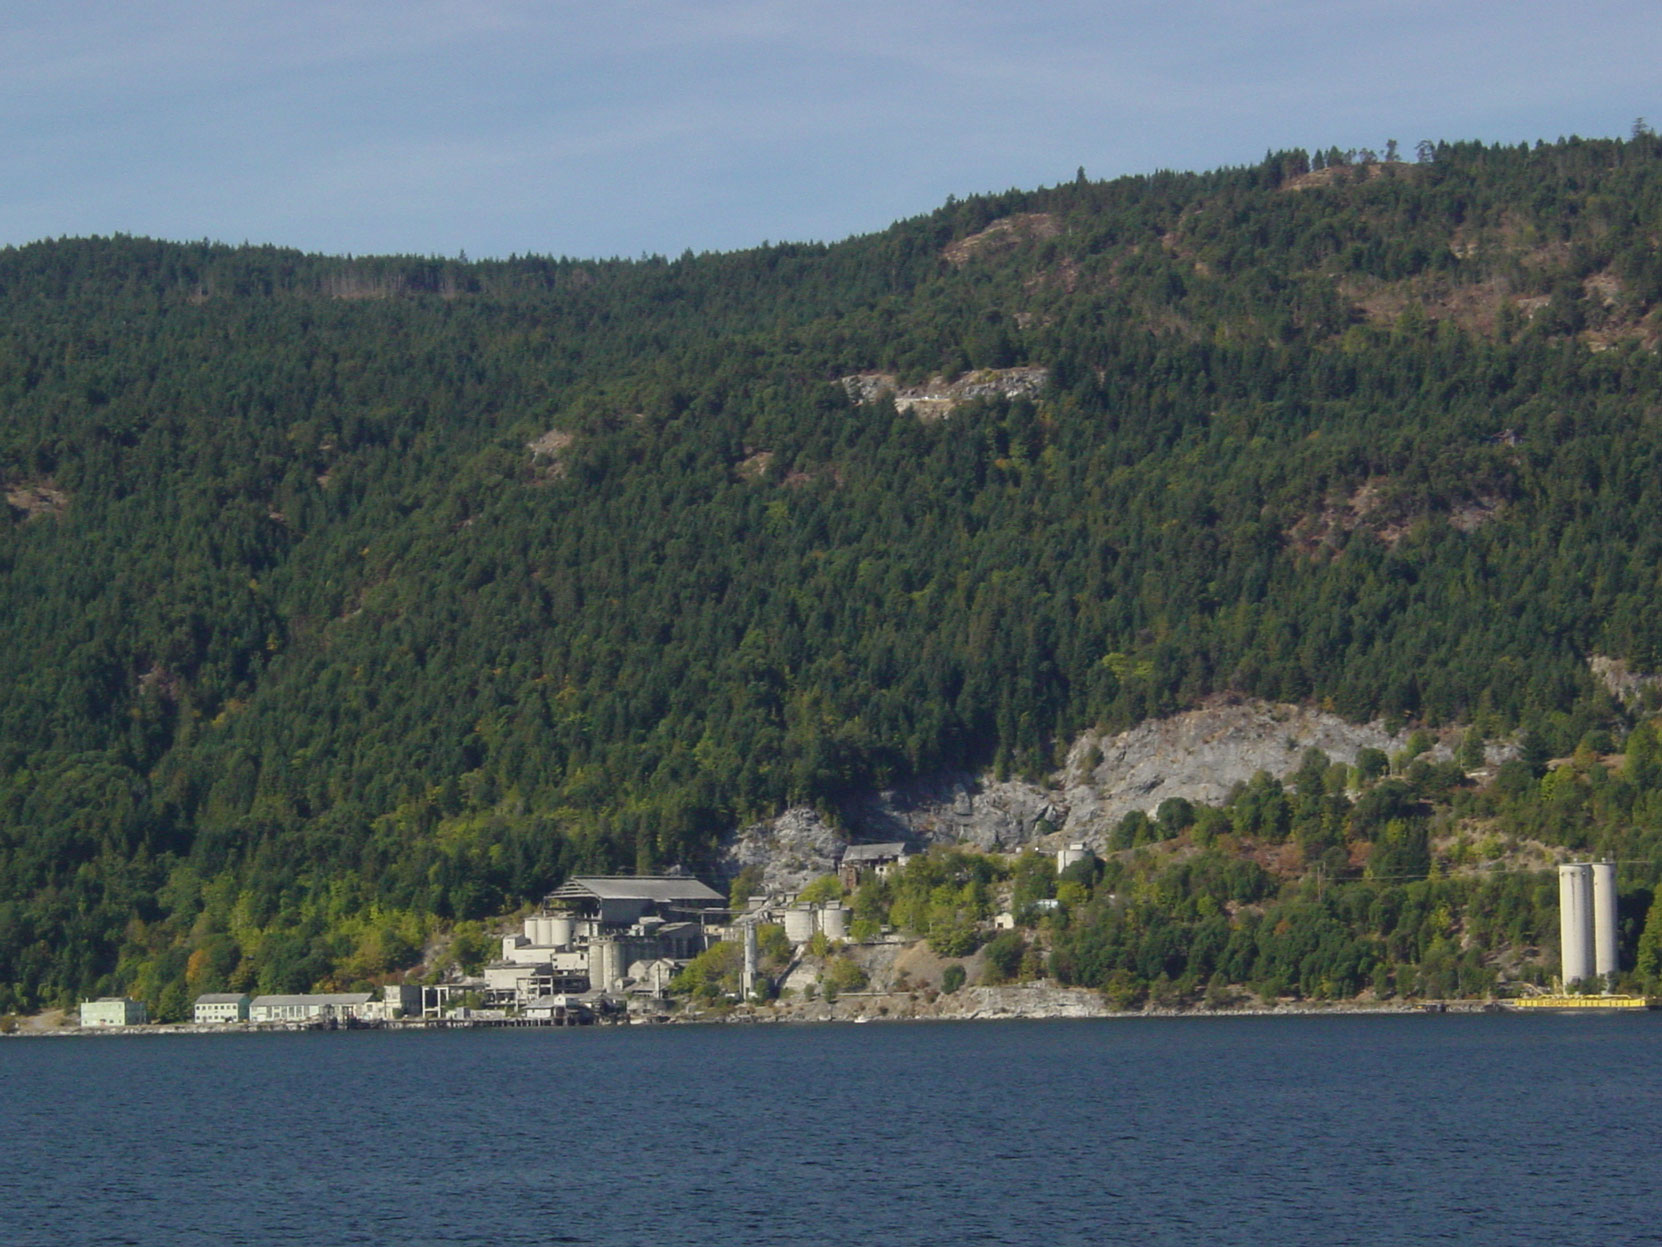 The ruins of the Bamberton cement factory, seen from the Brentwood-Mill Bay ferry, 2003 (photo by author)